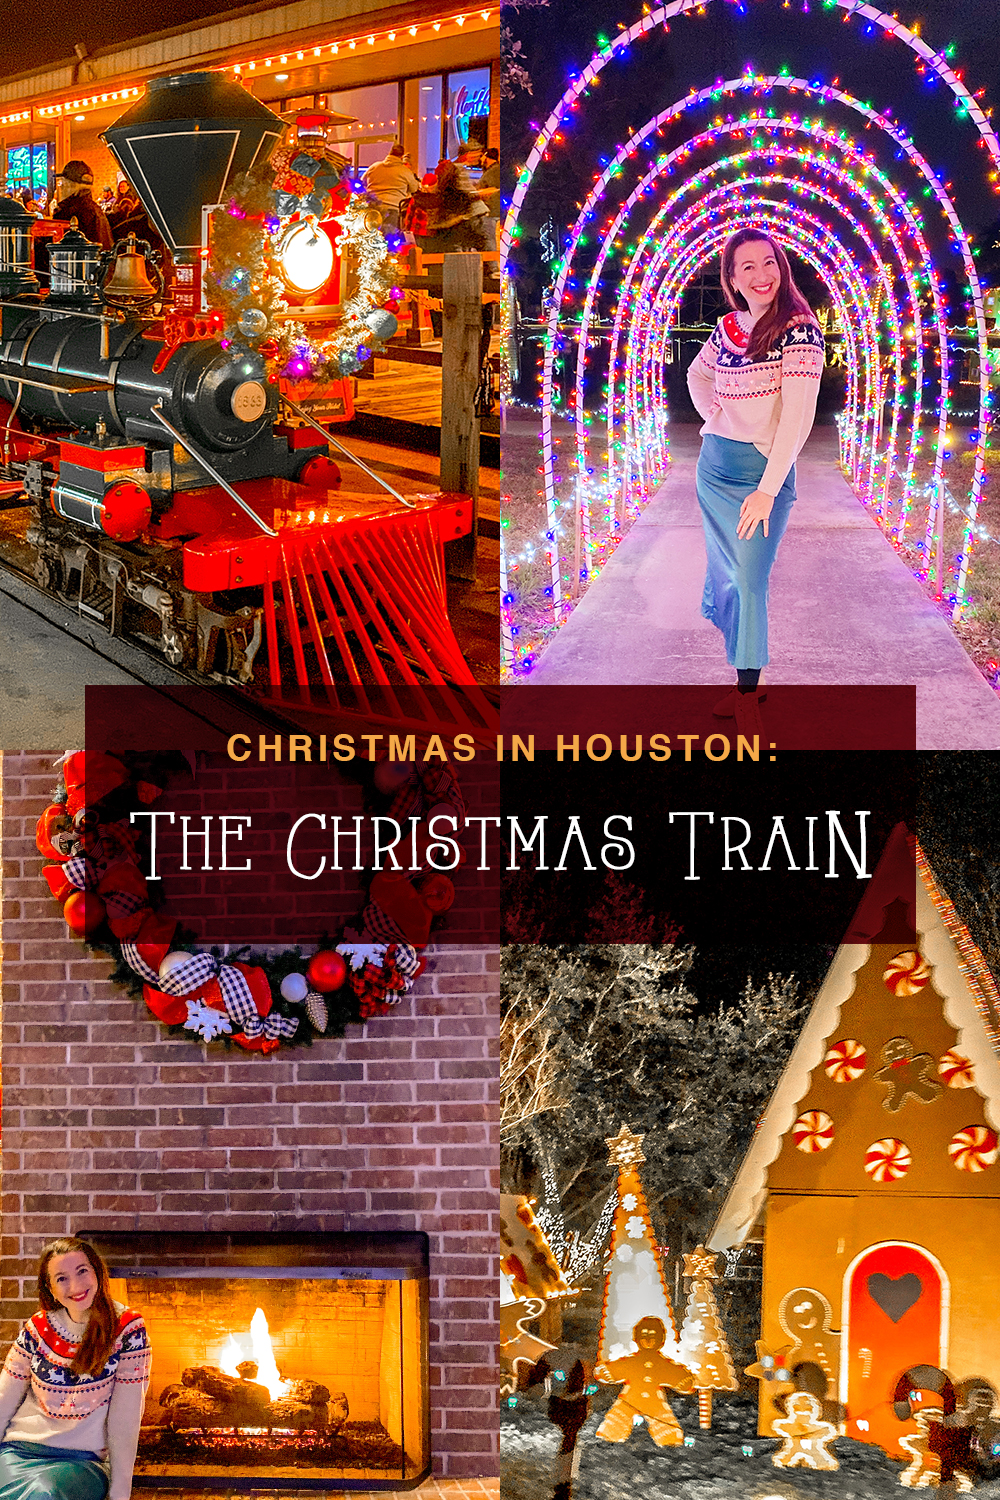 The Christmas Train in Alvin, Houston, TX